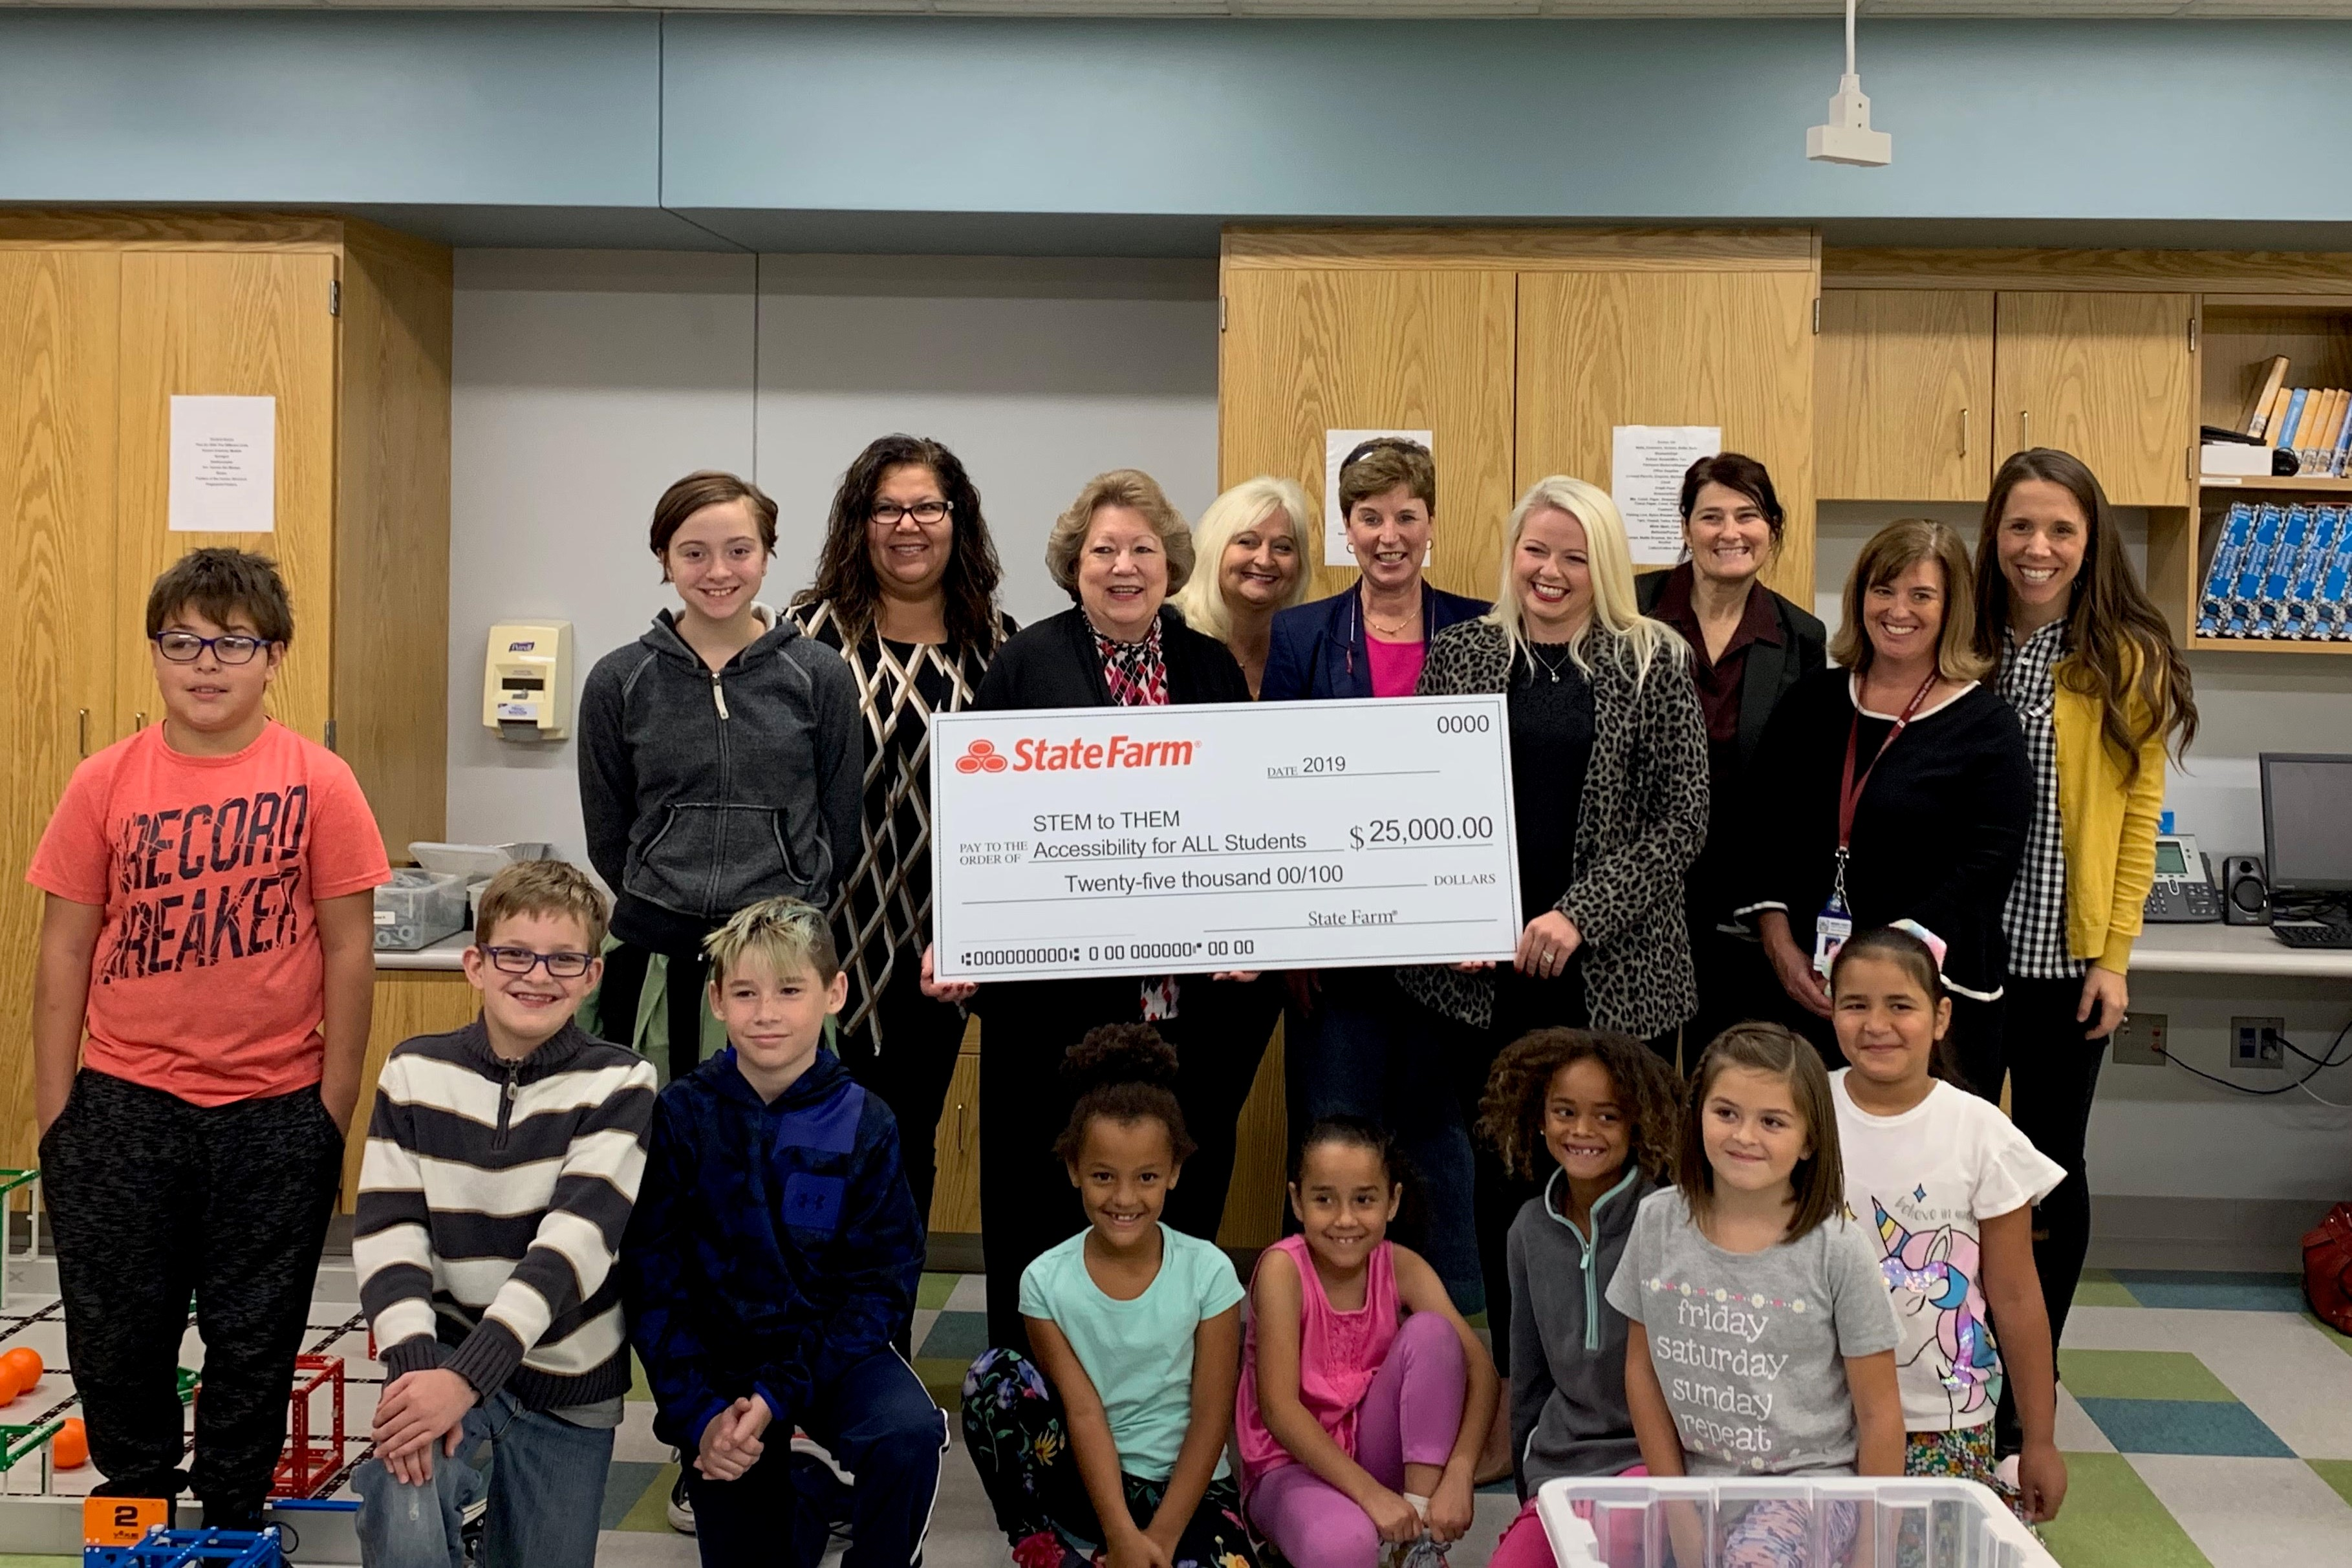 Participants in the STEM to THEM program celebrate the $25k grant at Grandview Elementary School in Bloomington.